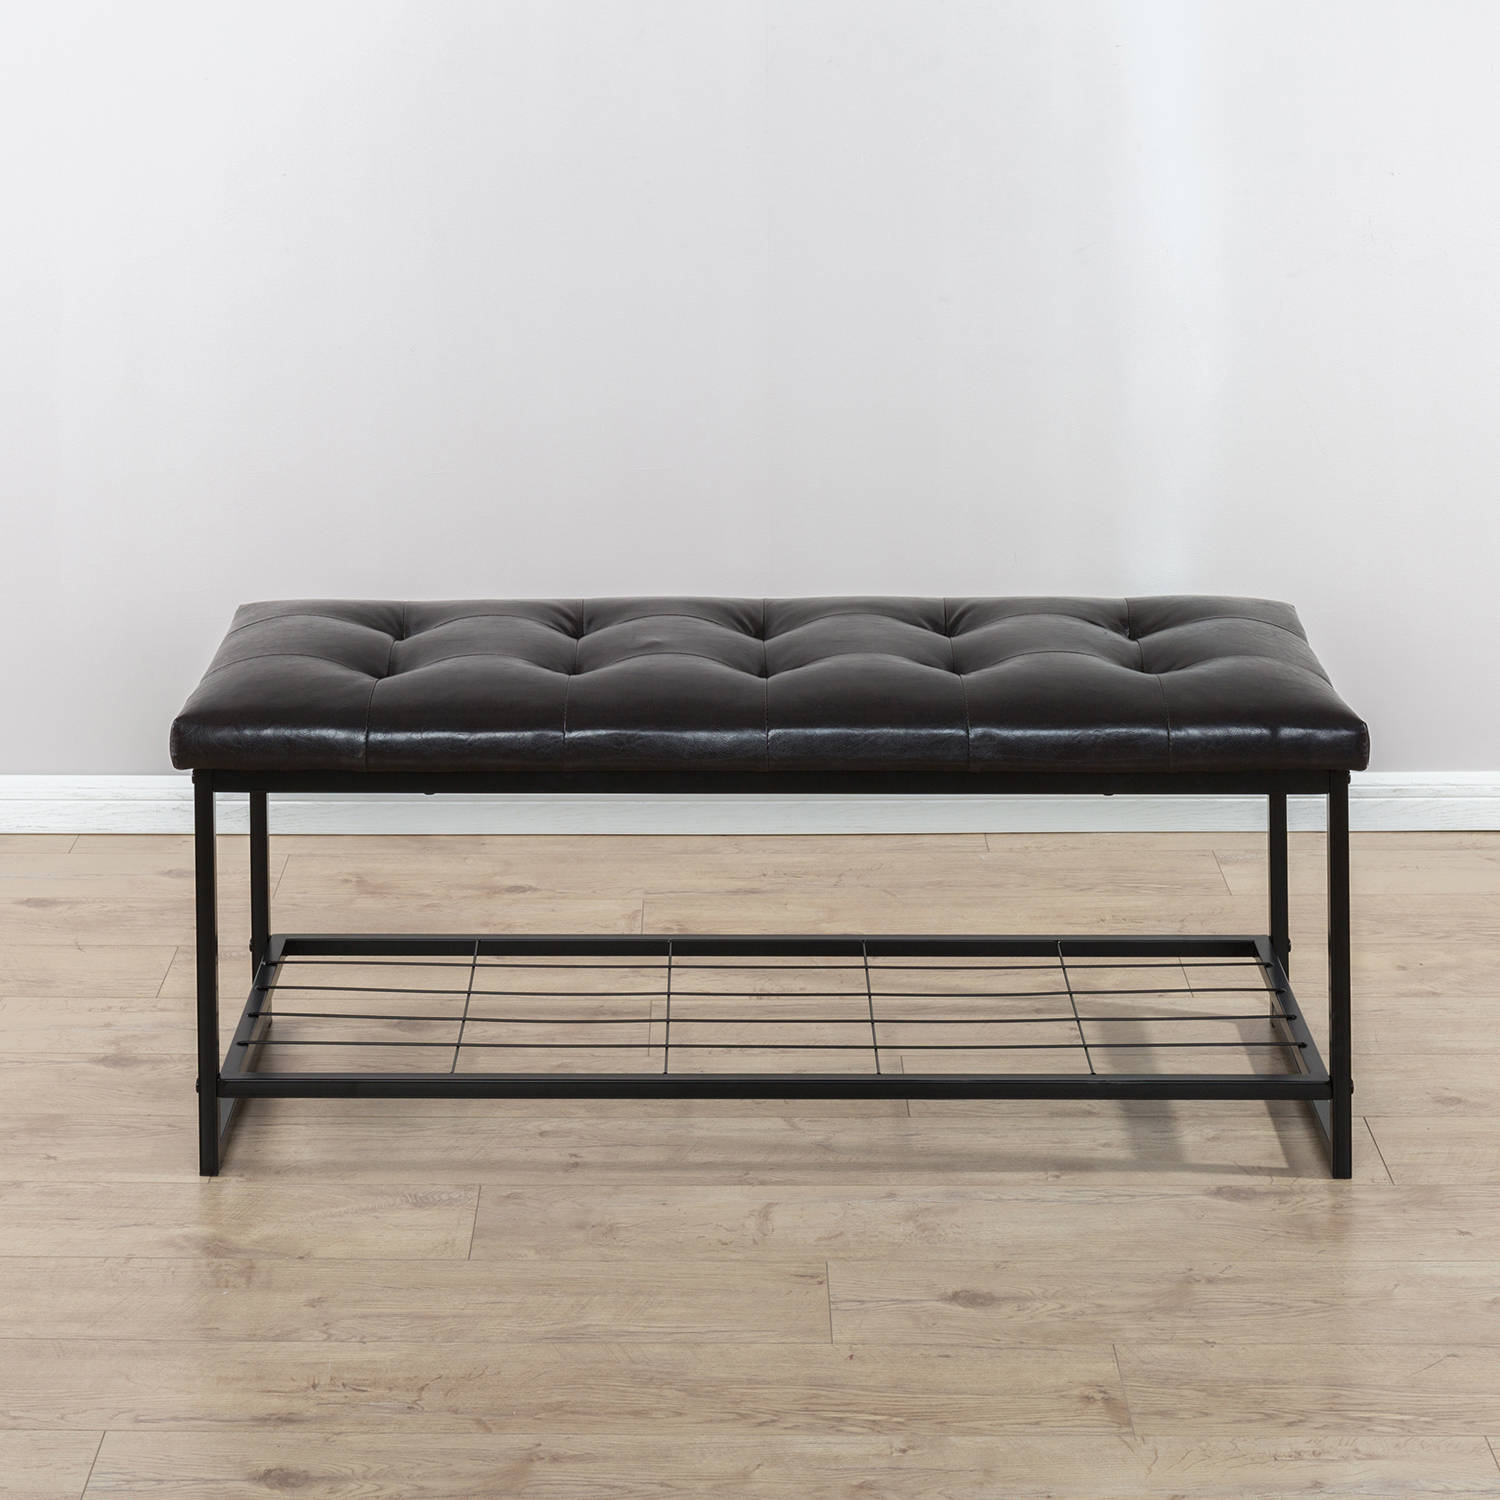 "Zinus Mindy Faux Leather 48"" Tufted Bench with Storage Shelf"